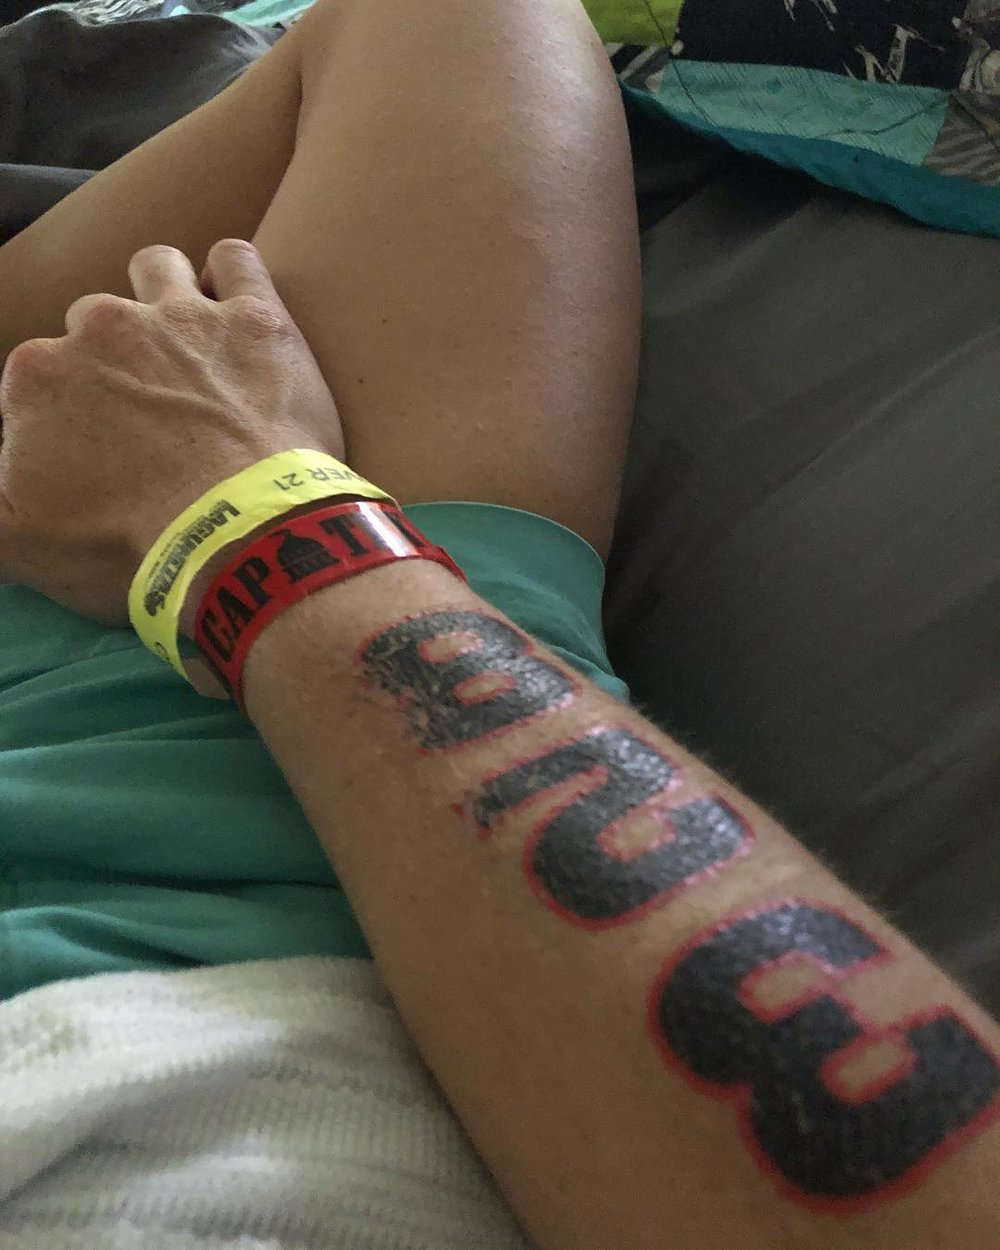 Sick in bed with my race number tattoos on Memorial Day instead of racing the CapTex Tri.